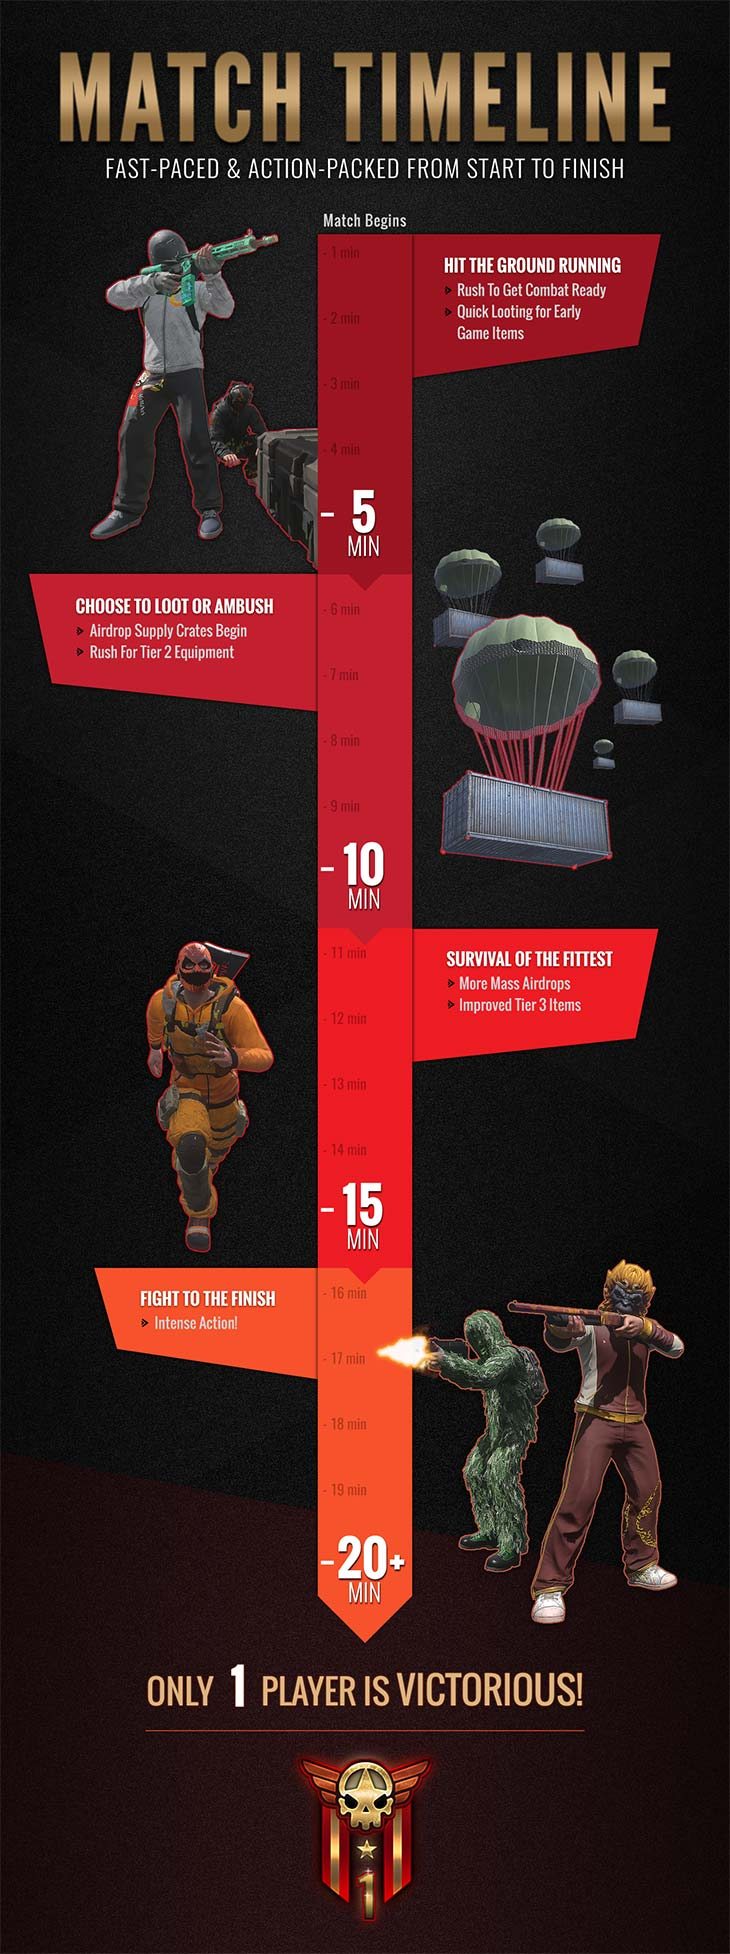 H1Z1 improved game pacing already patched PUBG